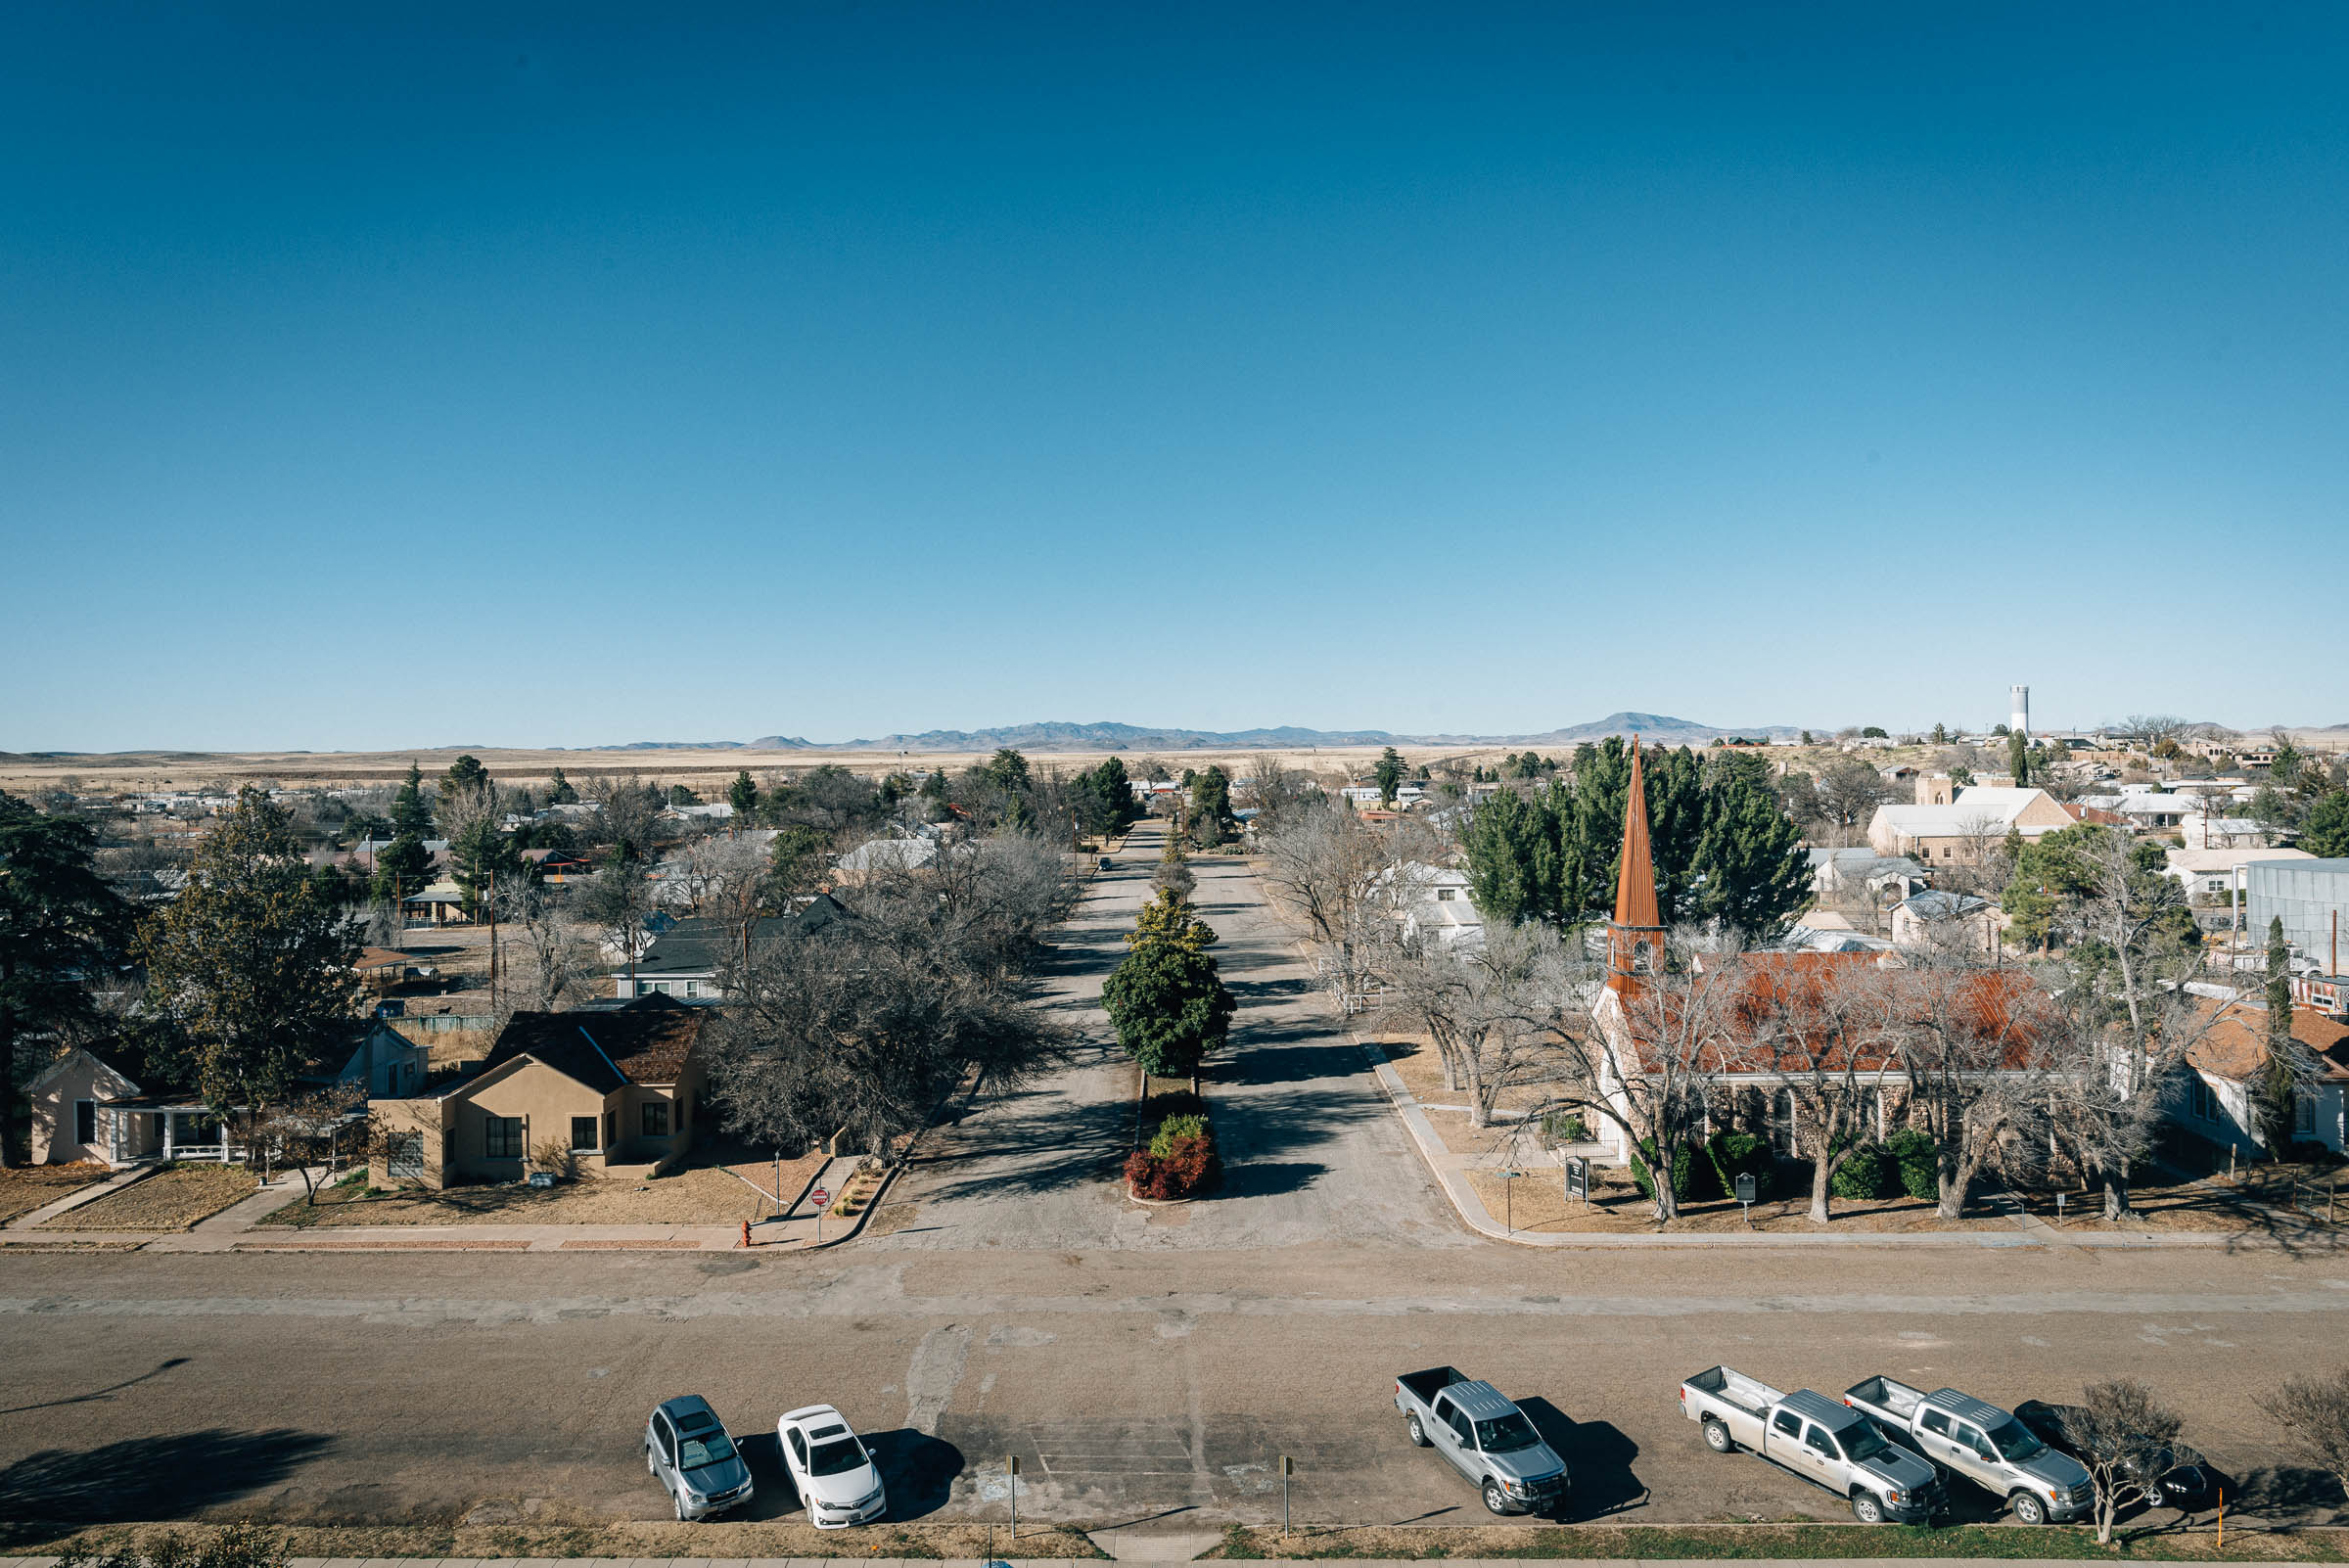 Street view from the Courthouse Tower in Marfa TX